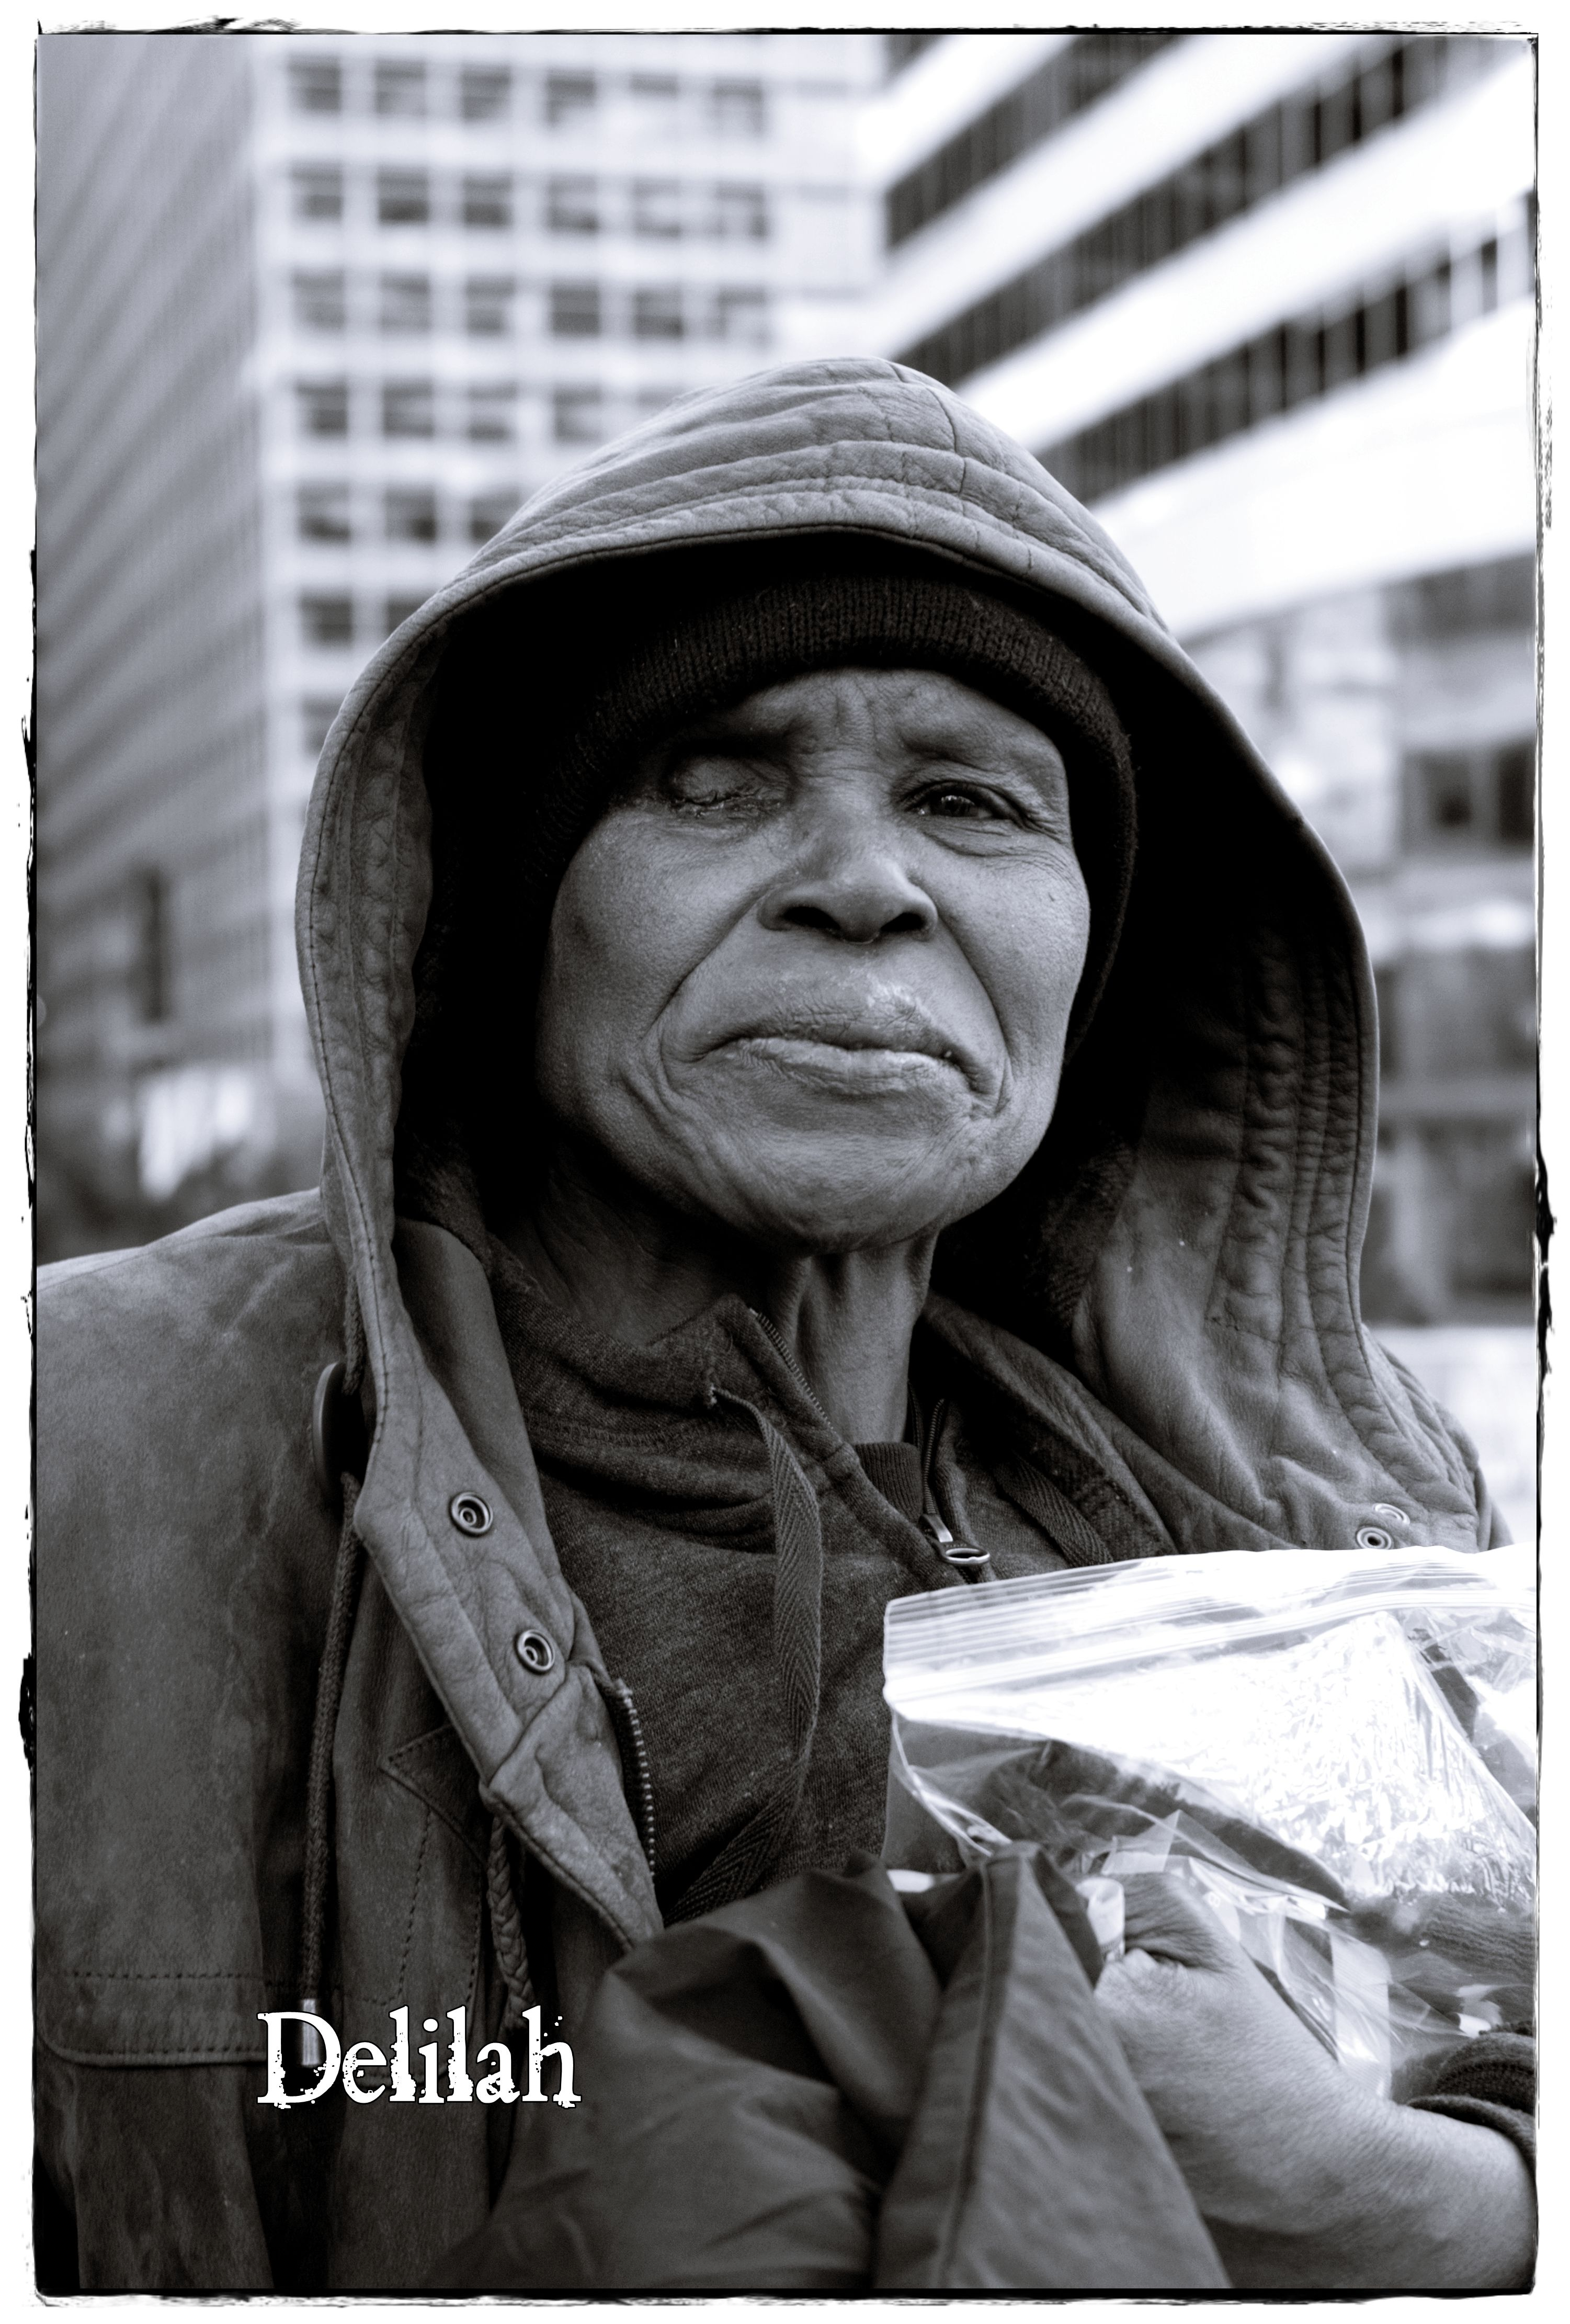 Pin on Homeless in america